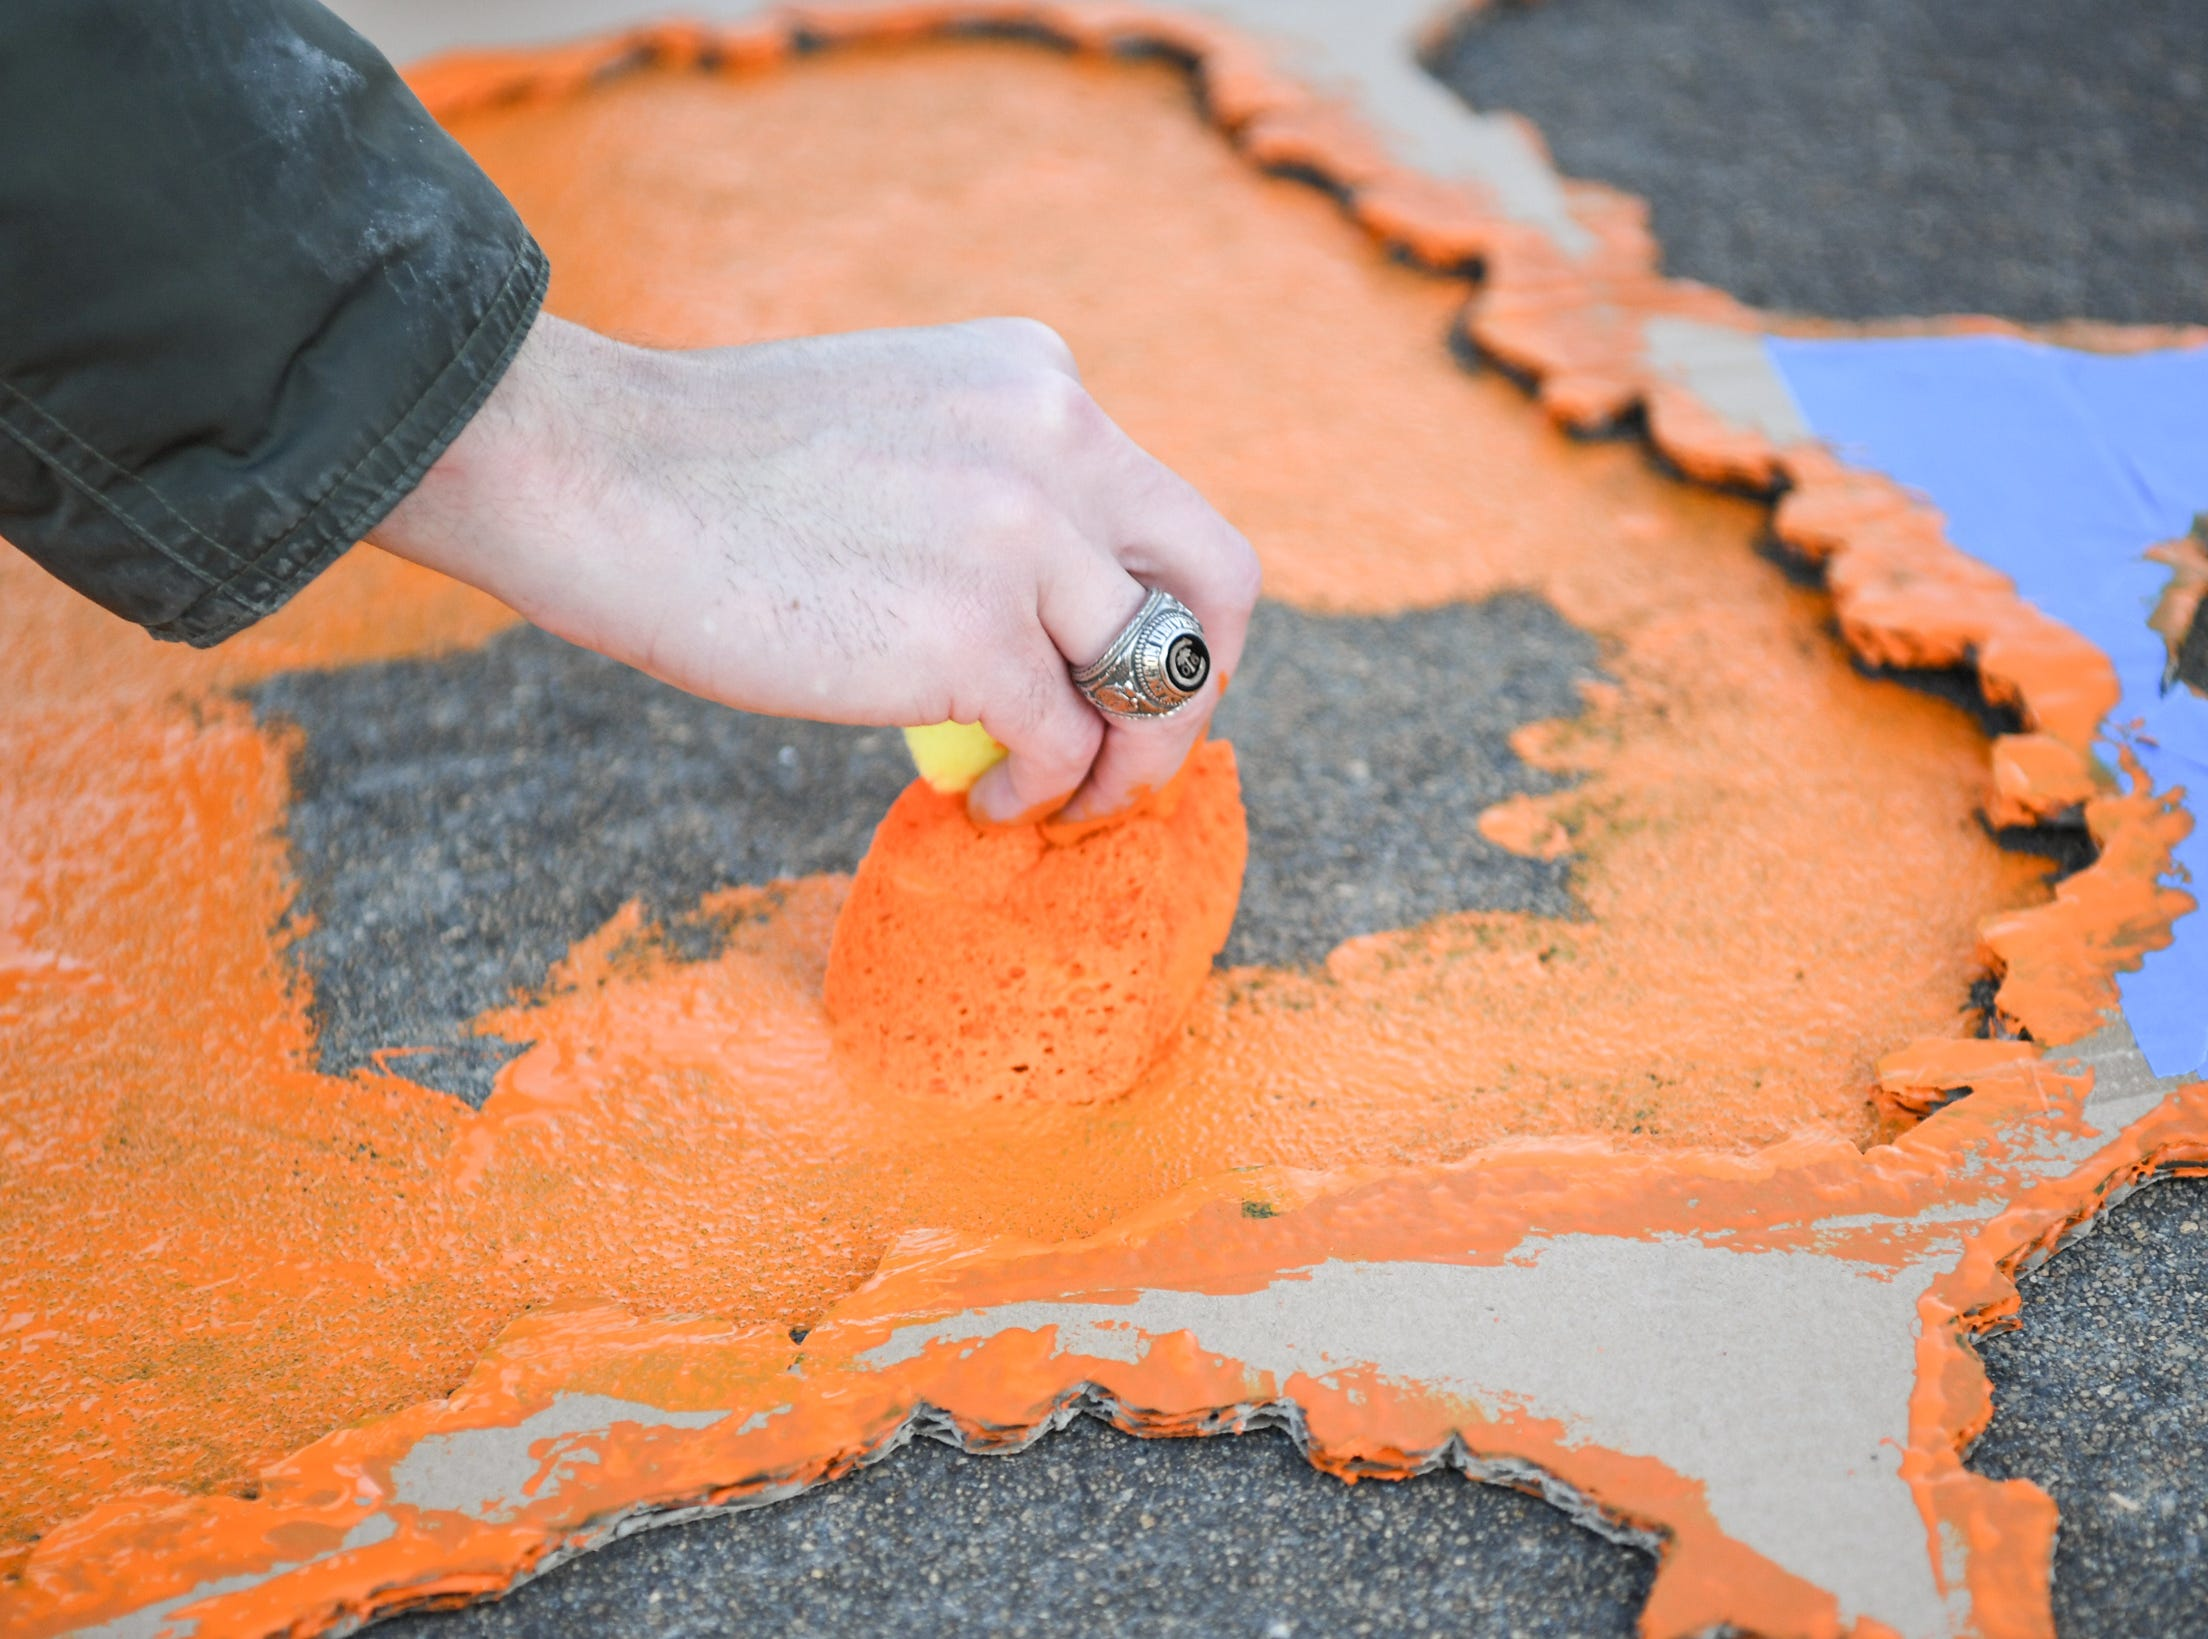 Blake Sanders, West Pelzer mayor, starts painting a tiger paw in the walkway of Eric Smith in West Pelzer Friday. Sanders, planning on painting 40 of them around town on walkways and driveways of those who have asked him through social media.